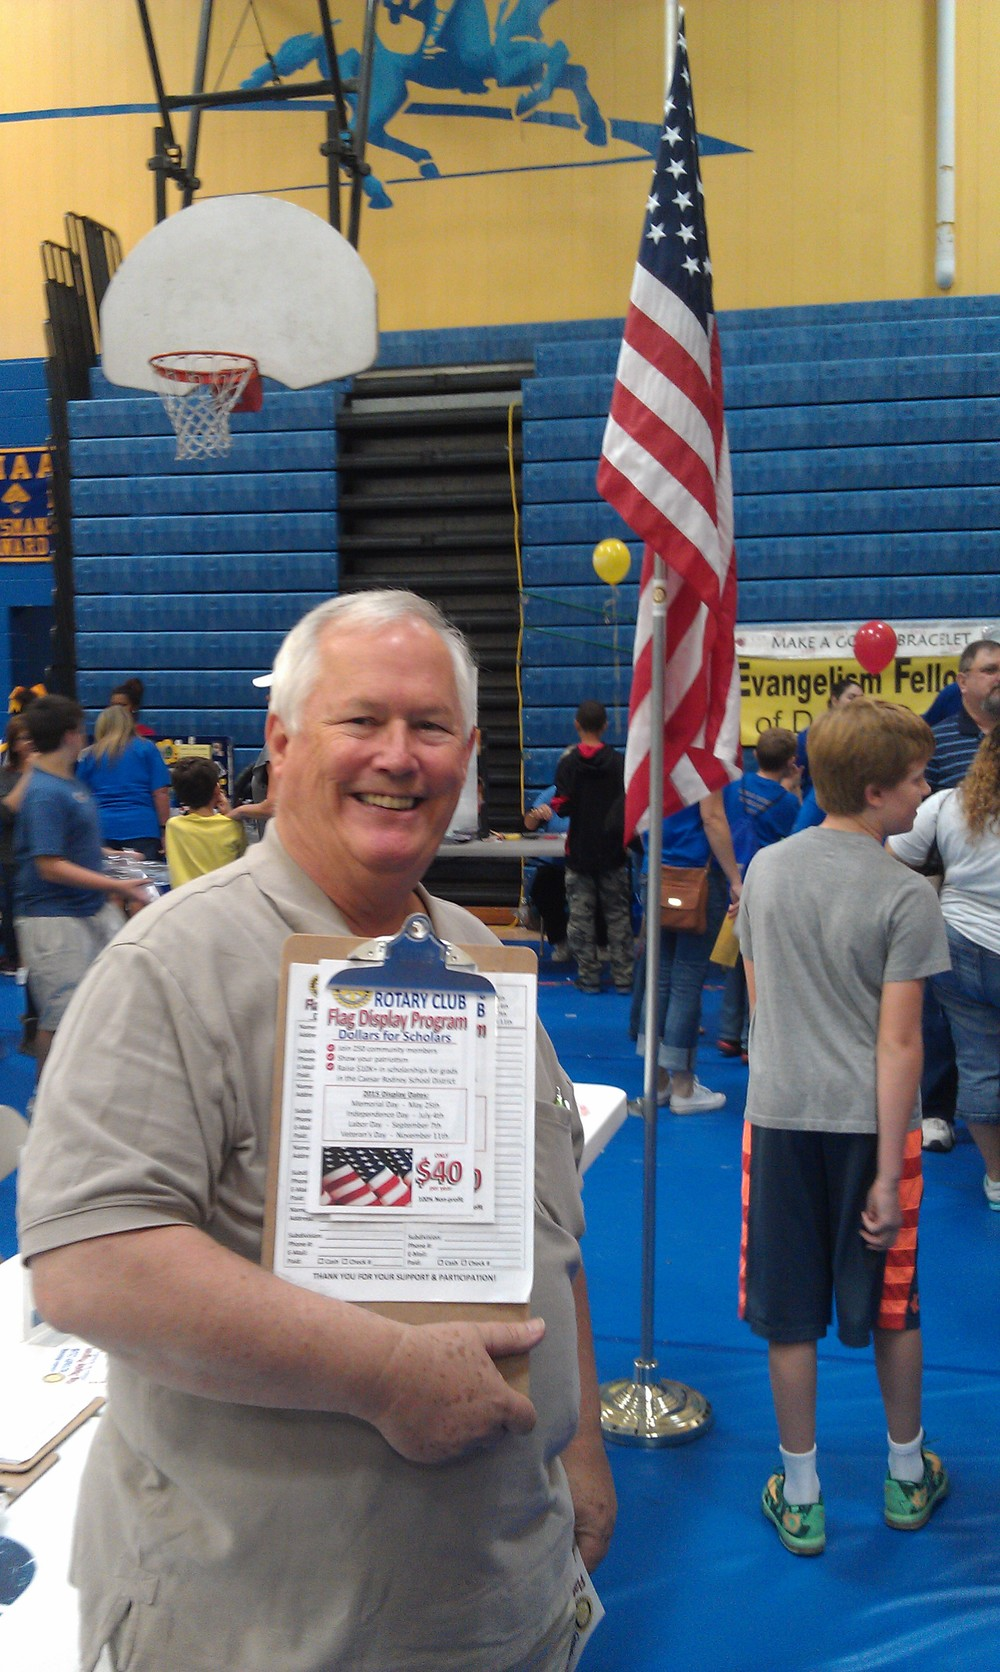 Camden-Wyoming Rotary Club member, John Kirby, at the Caesar Rodney High School Rider Pride Day event.  With a flyer for the Flag Display Program and sign-up sheet in hand.   Photo by club member Troy Cooper.  (not pictured, club member Steve Welde)